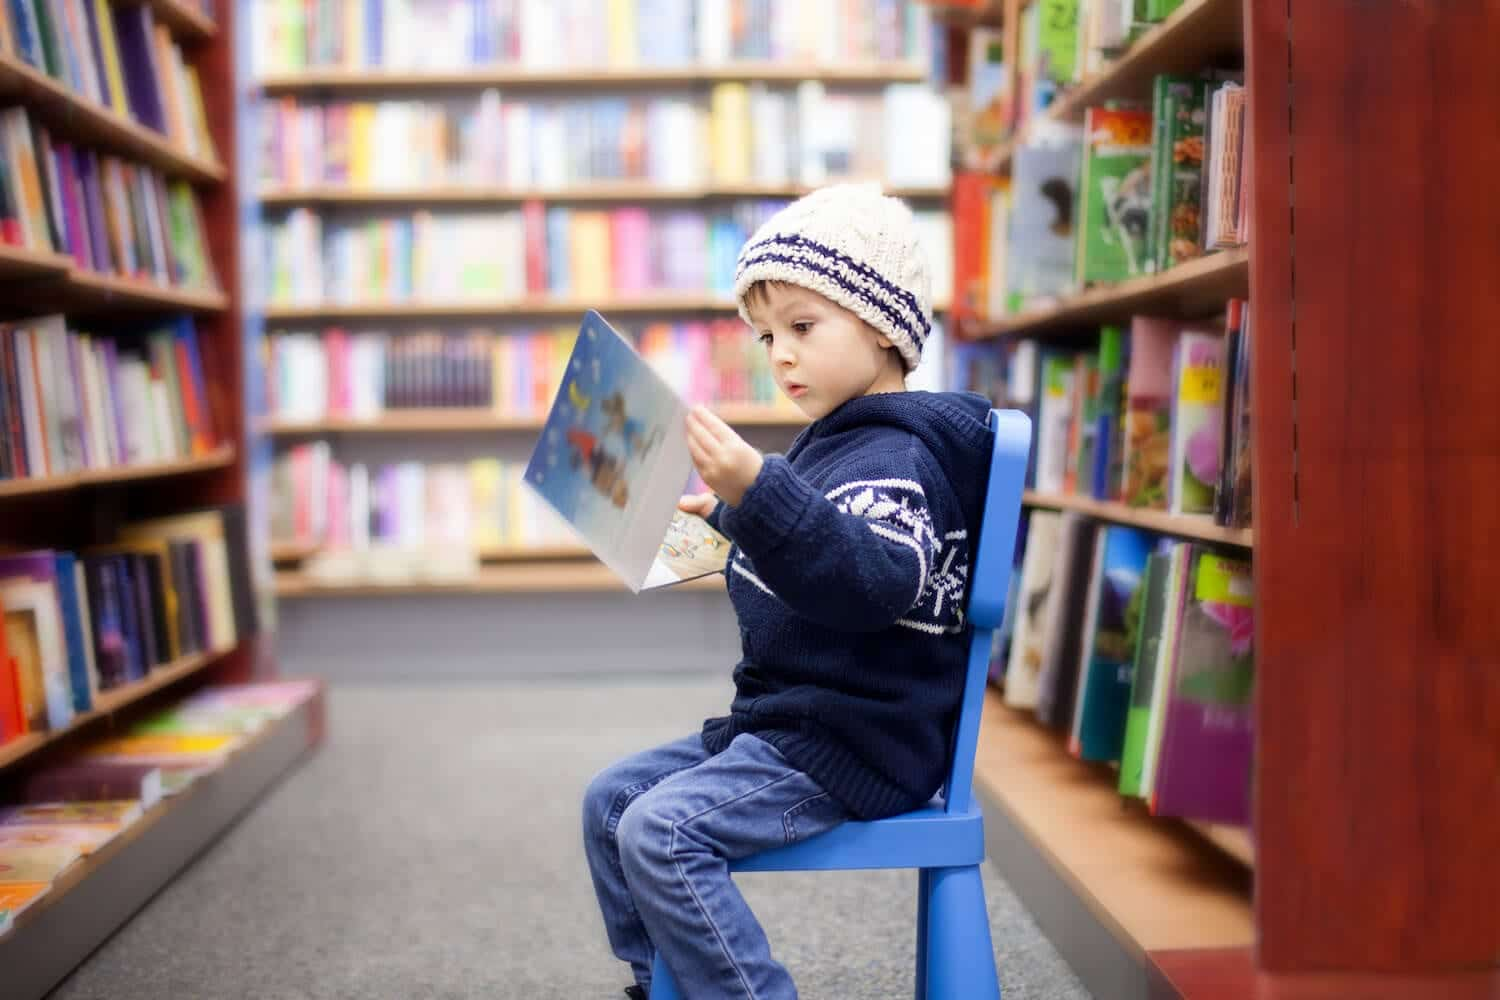 Portrait of kid reading a book in a library